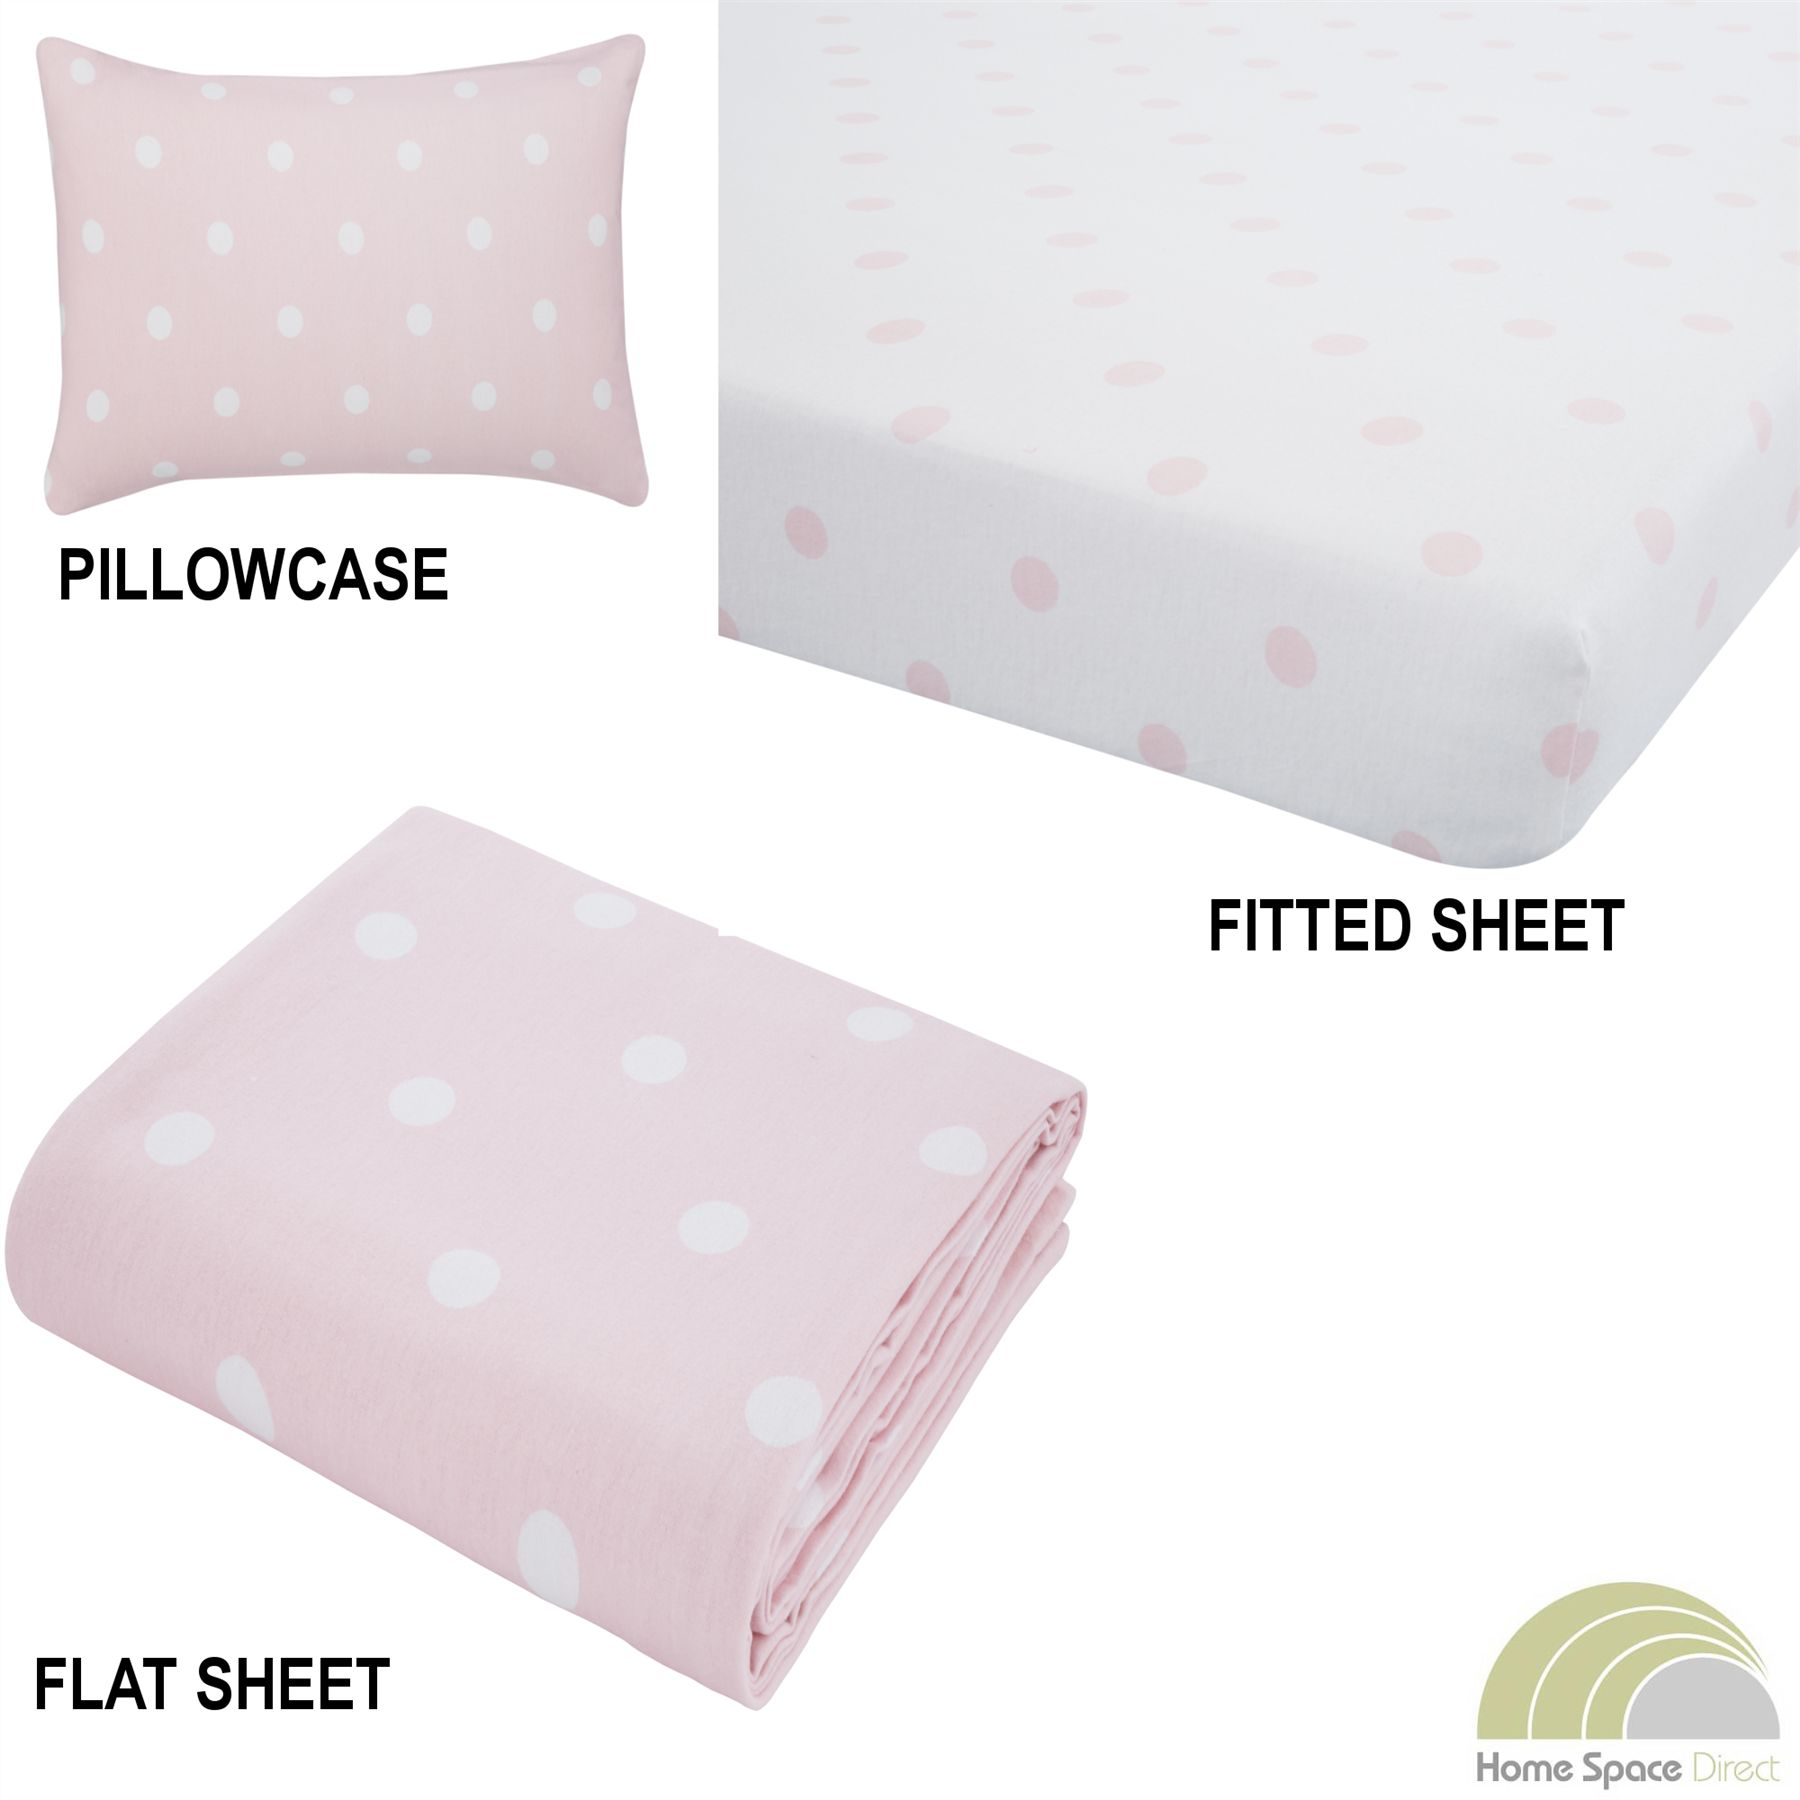 100% Cotton Flannelette Sheets Fitted Flat Pillowcases